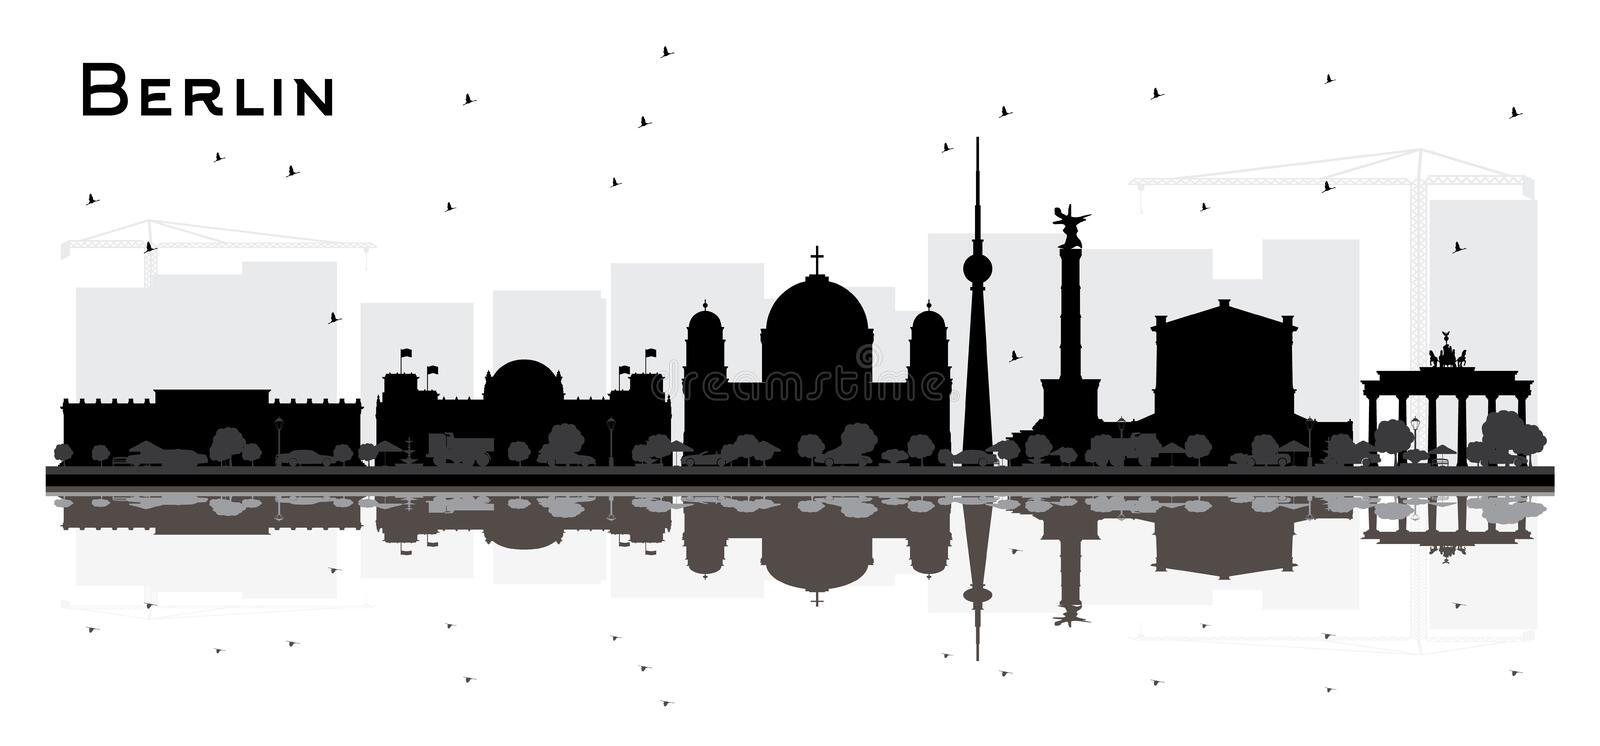 Berlin Germany City Skyline Silhouette with Black Buildings Isolated on White. Vector Illustration. Business Travel and Tourism Concept with Historic royalty free illustration